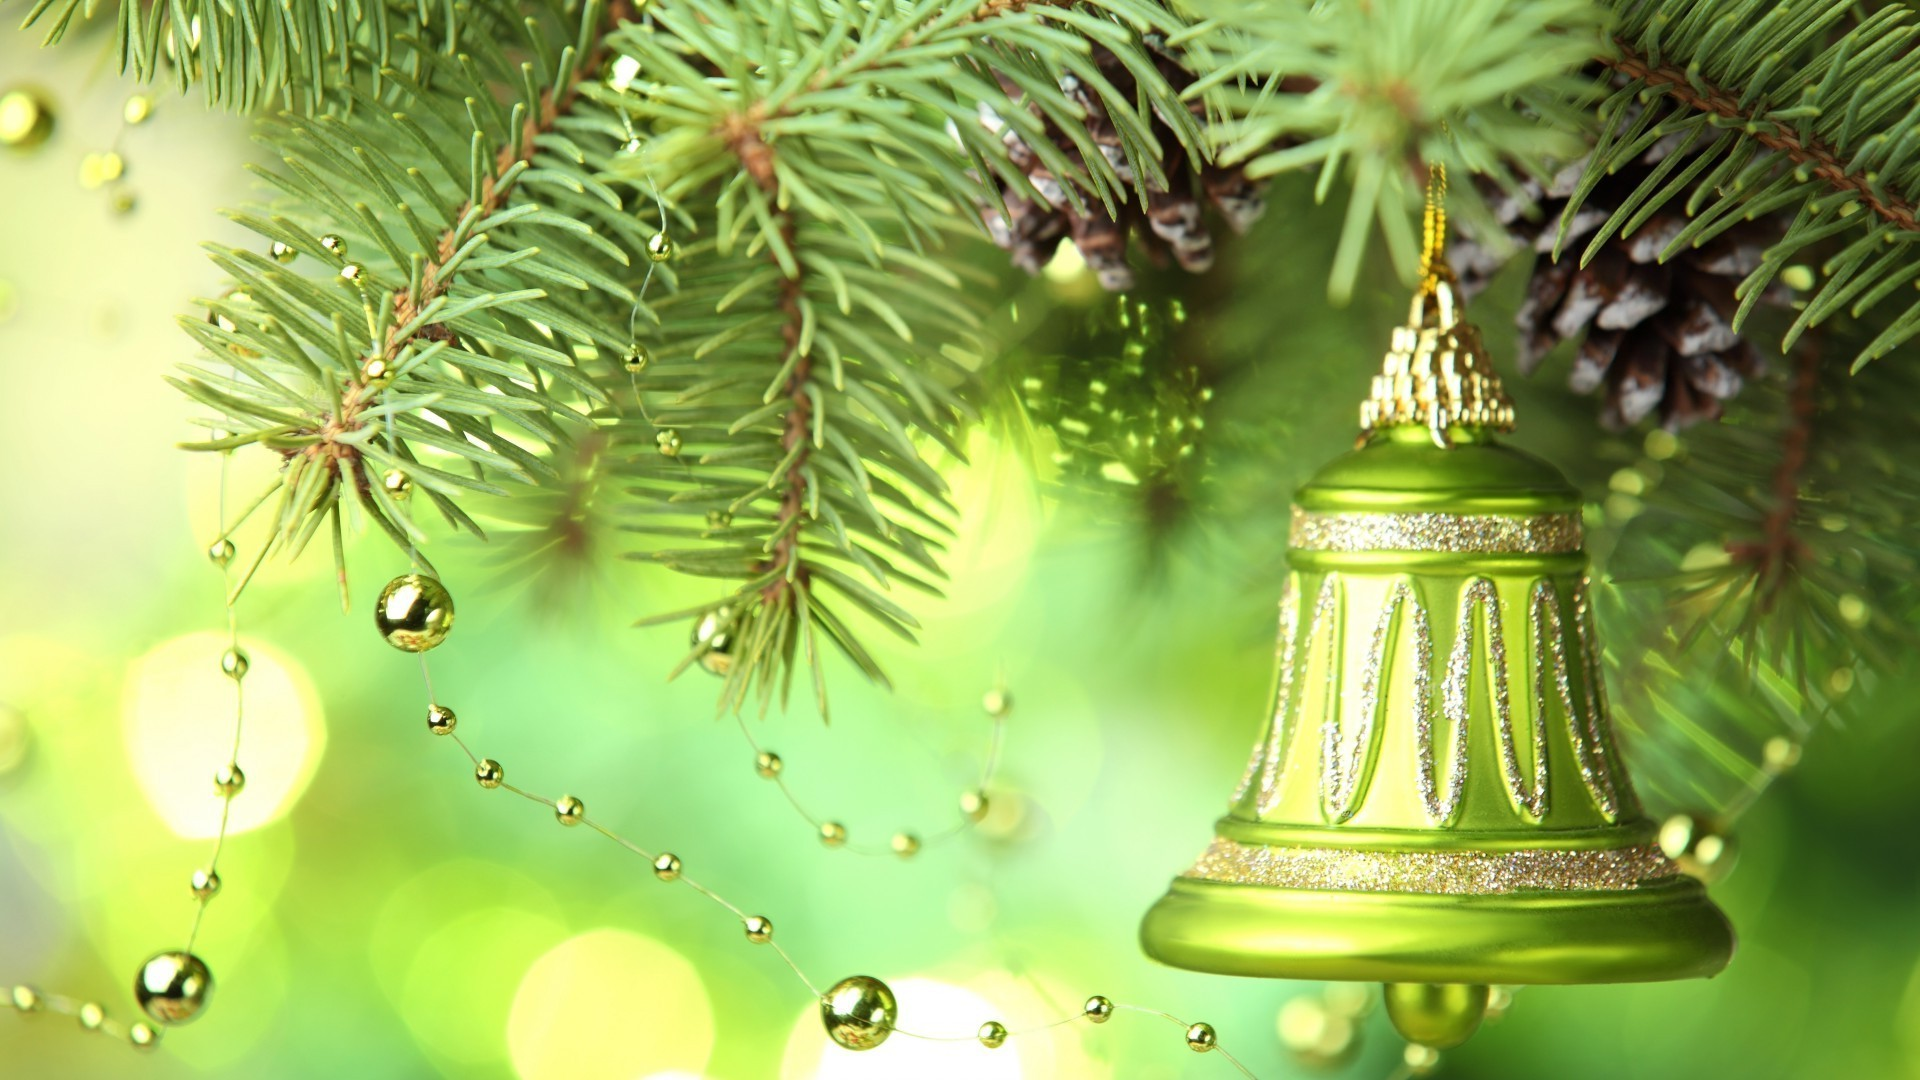 new year christmas winter pine decoration tree hanging fir shining merry celebration gold evergreen branch needle spruce ball eve traditional season